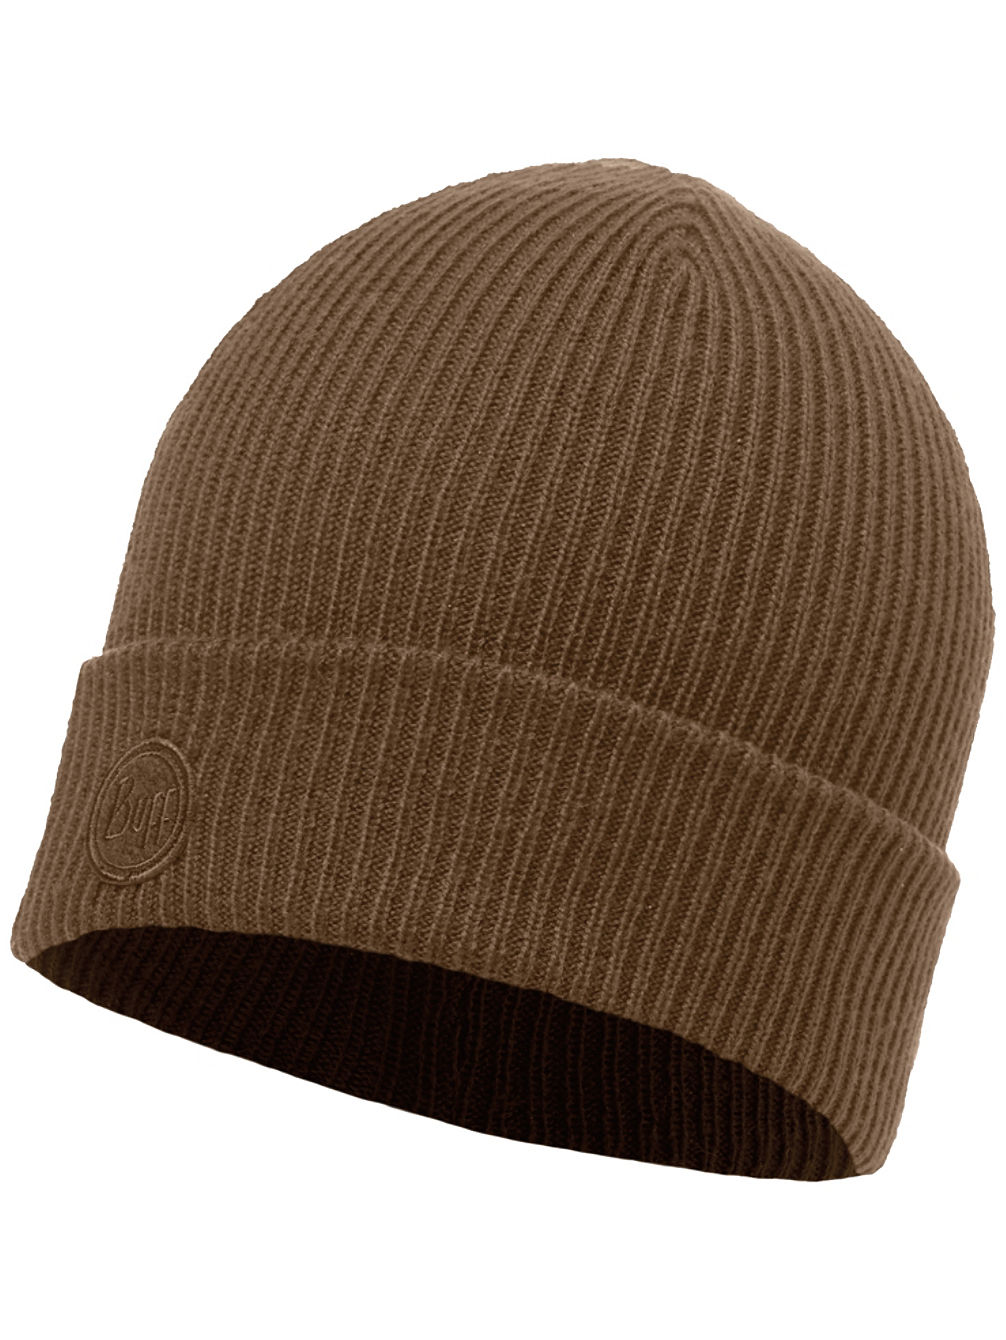 Edsel Knitted Beanie